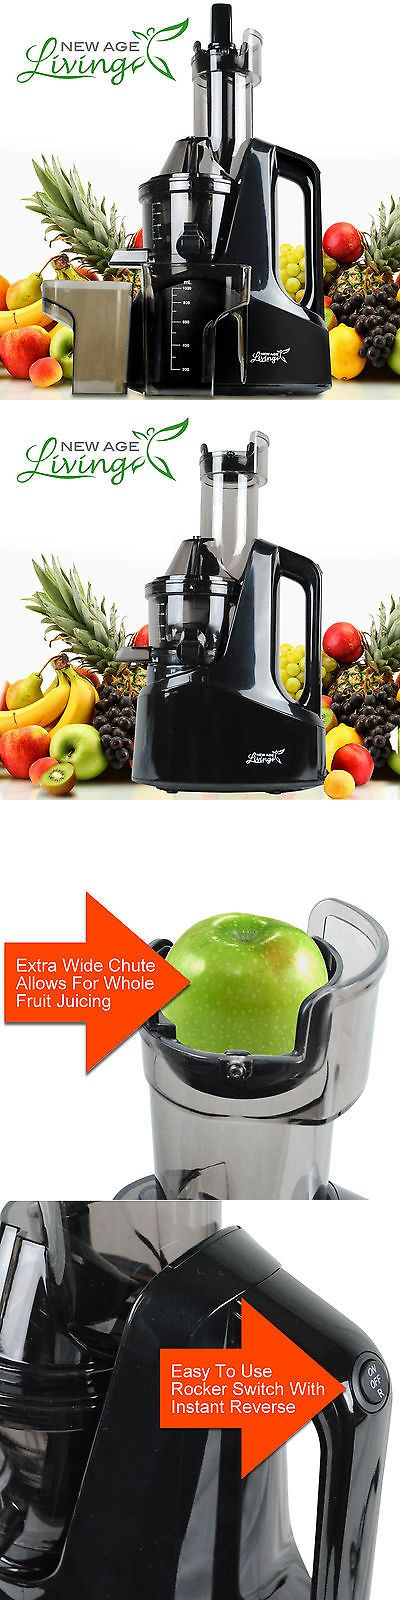 appliances: New Commercial Slow Juicer Masticating Cold Press Machine Fruit Vegetable S -> BUY IT NOW ONLY: $169.95 on eBay!